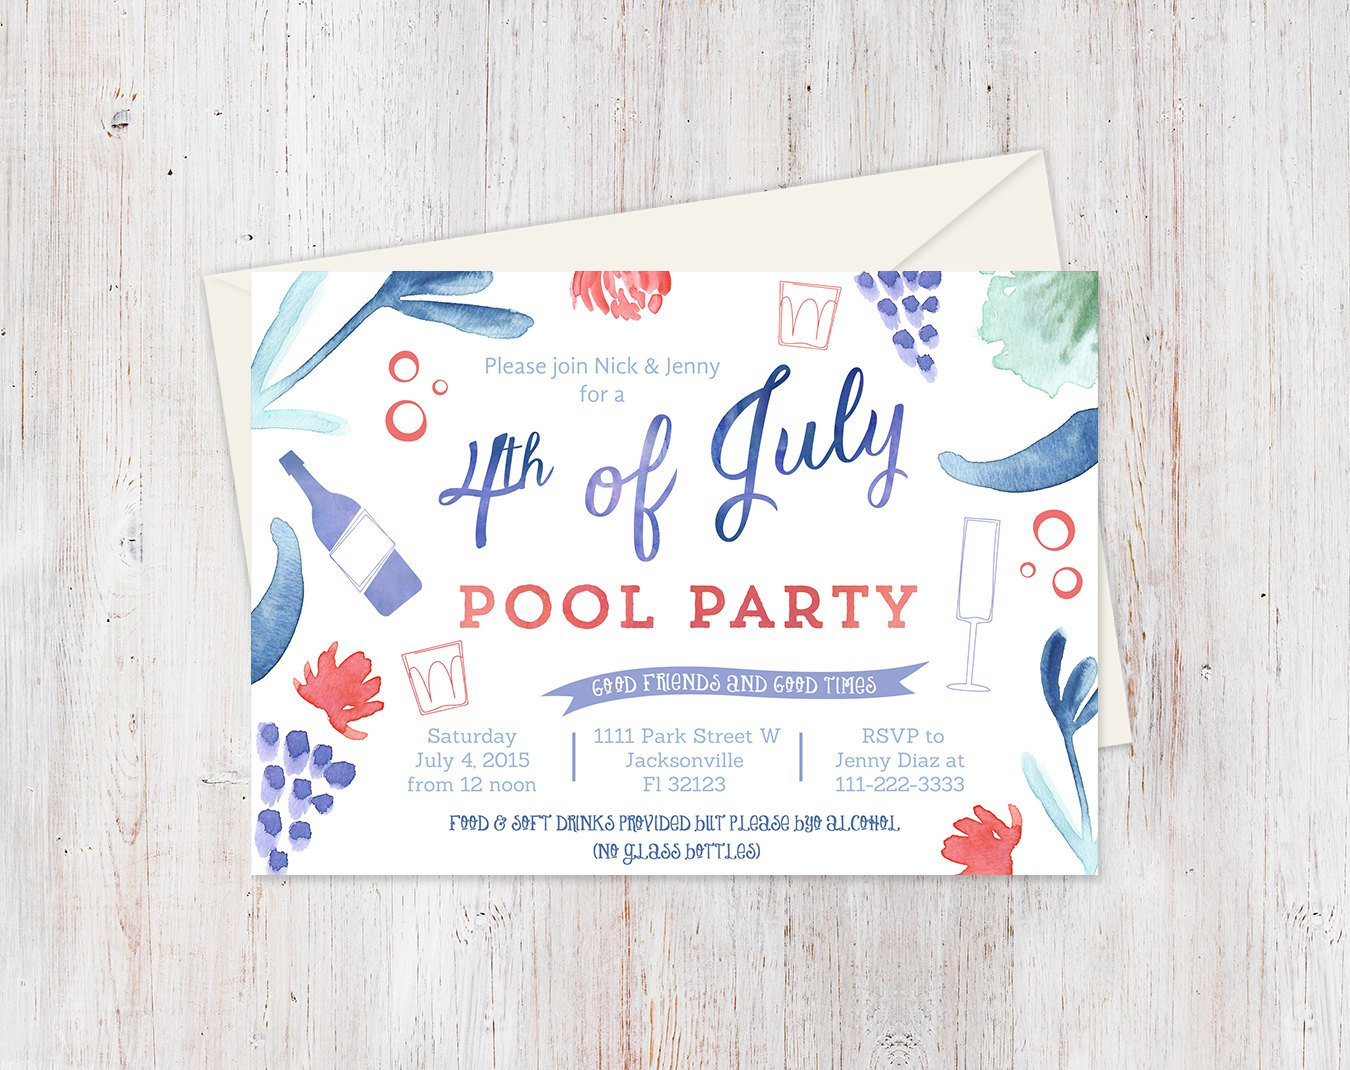 Pool Party Invitation Layout